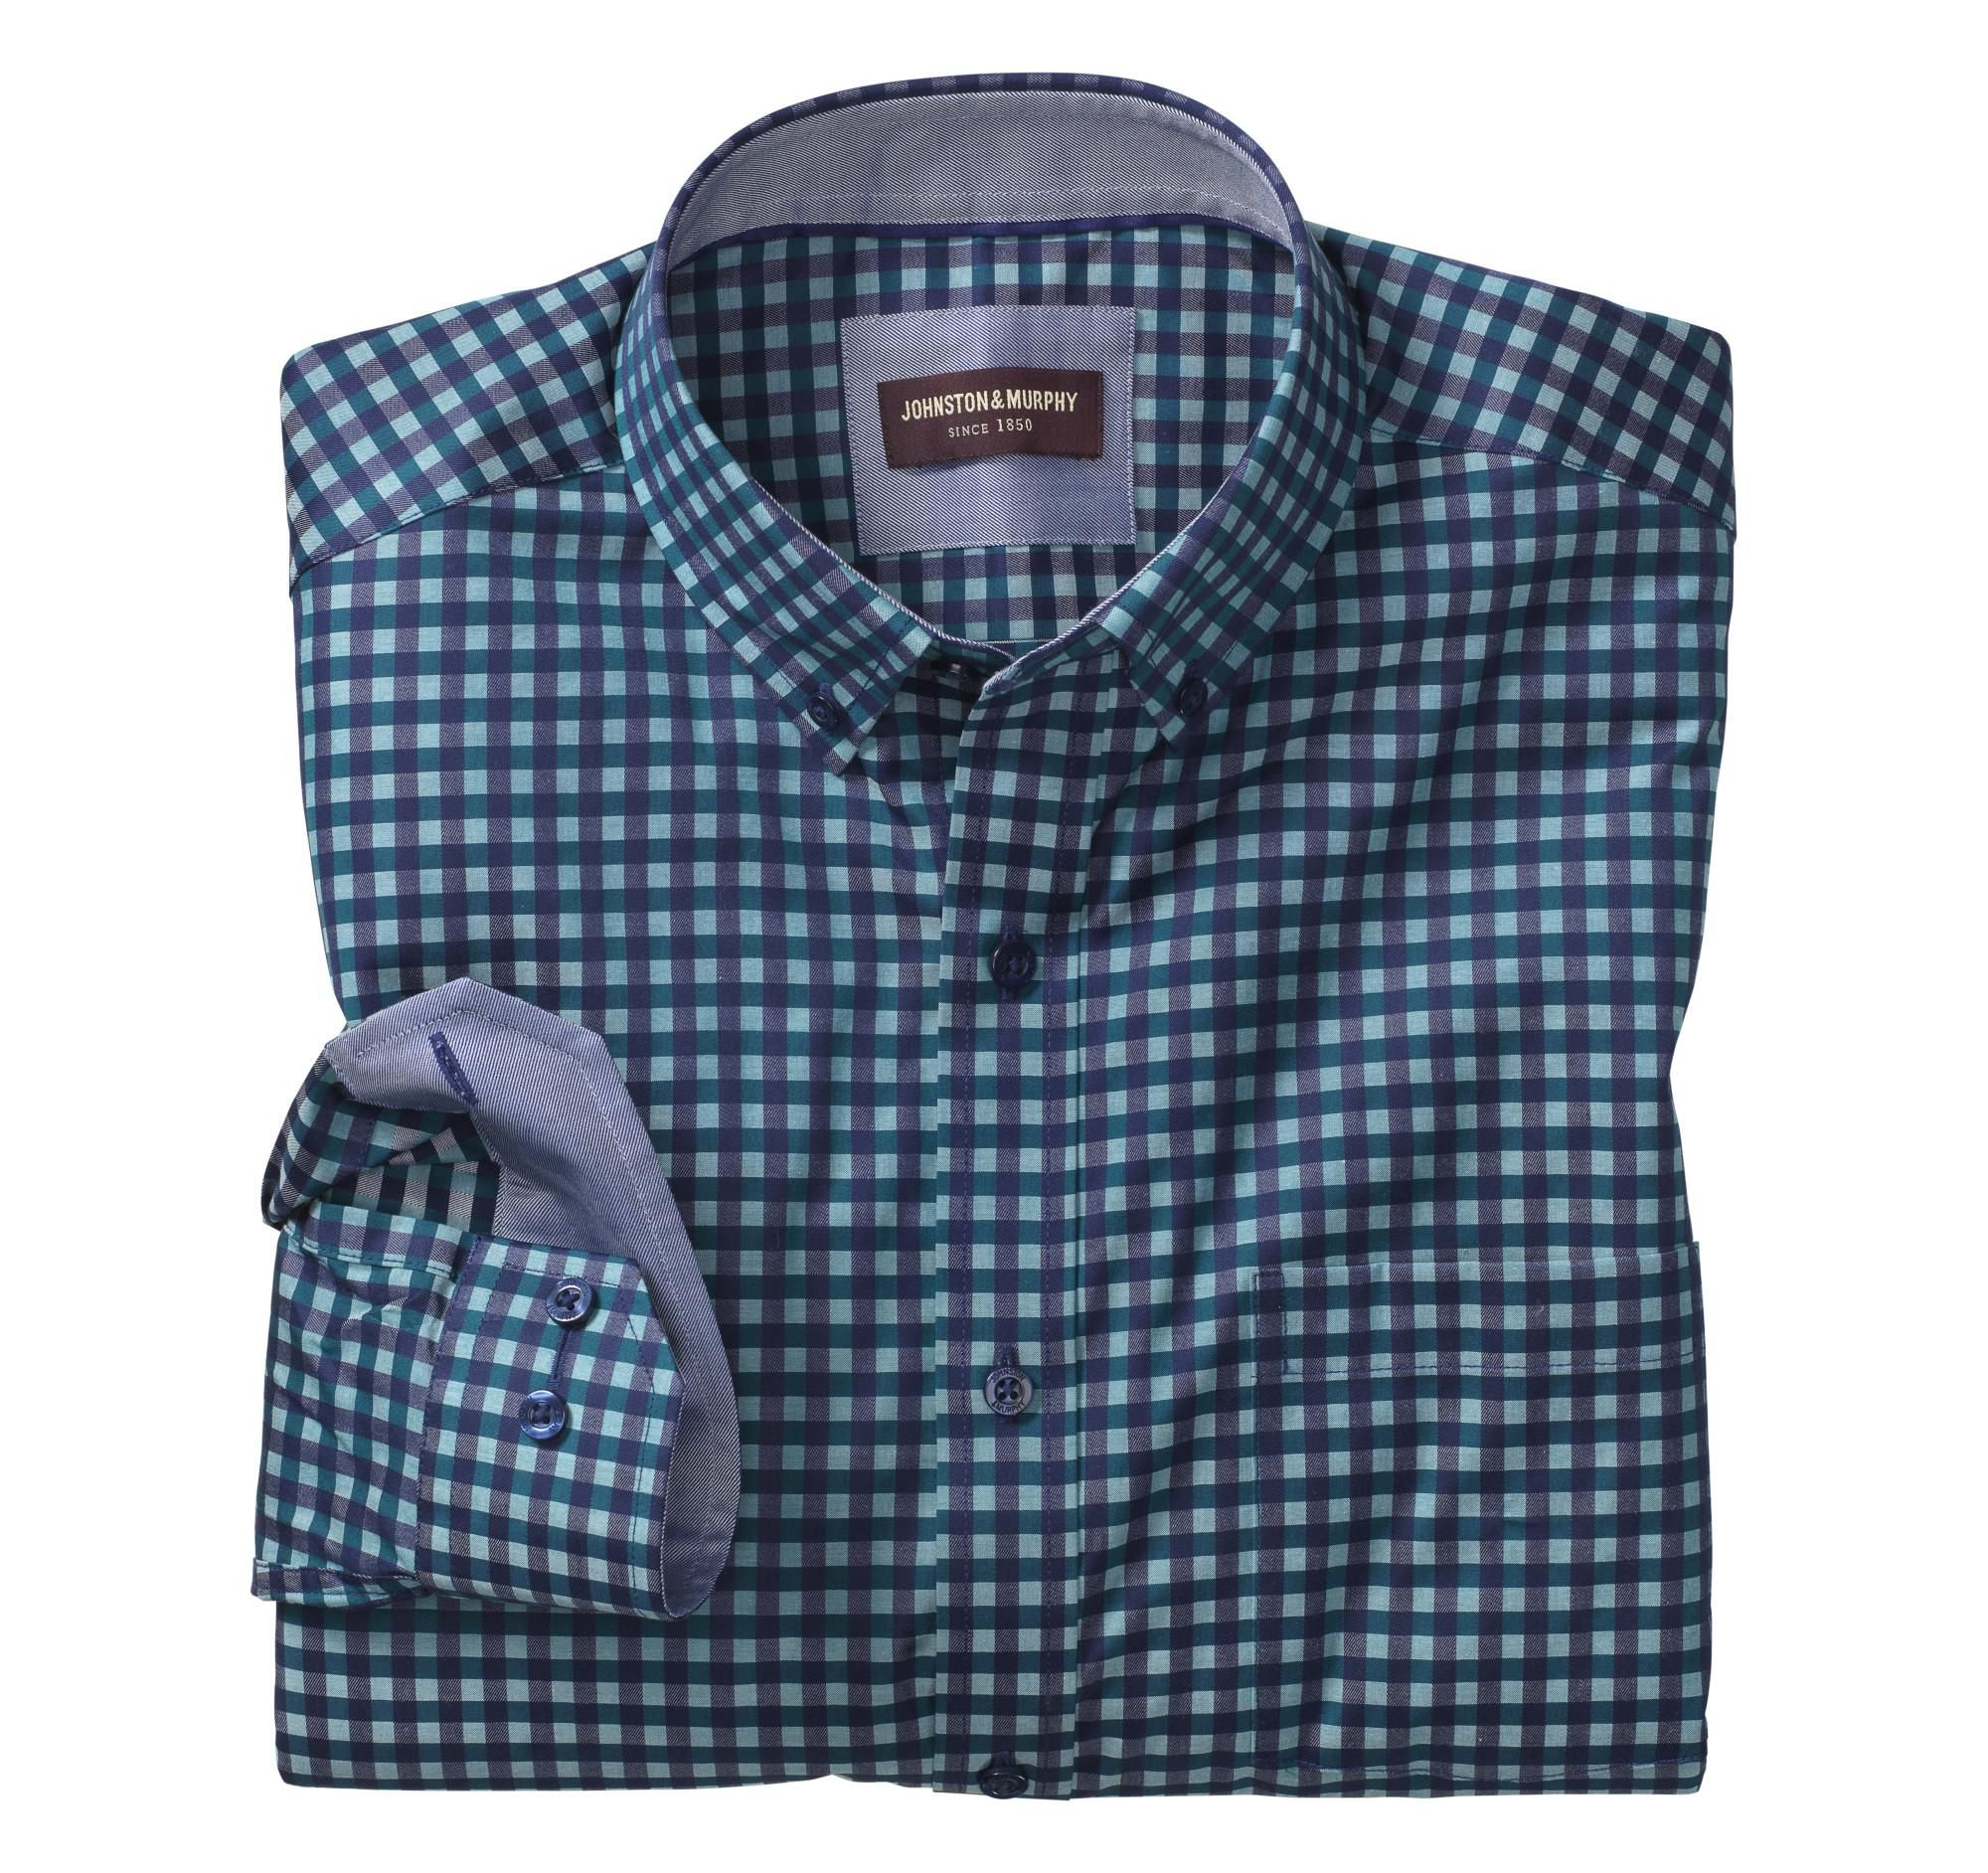 #Johnston & Murphy - #Johnston & Murphy Johnston & Murphy Dark Twill Gingham Button-Down Collar Shirt - AdoreWe.com